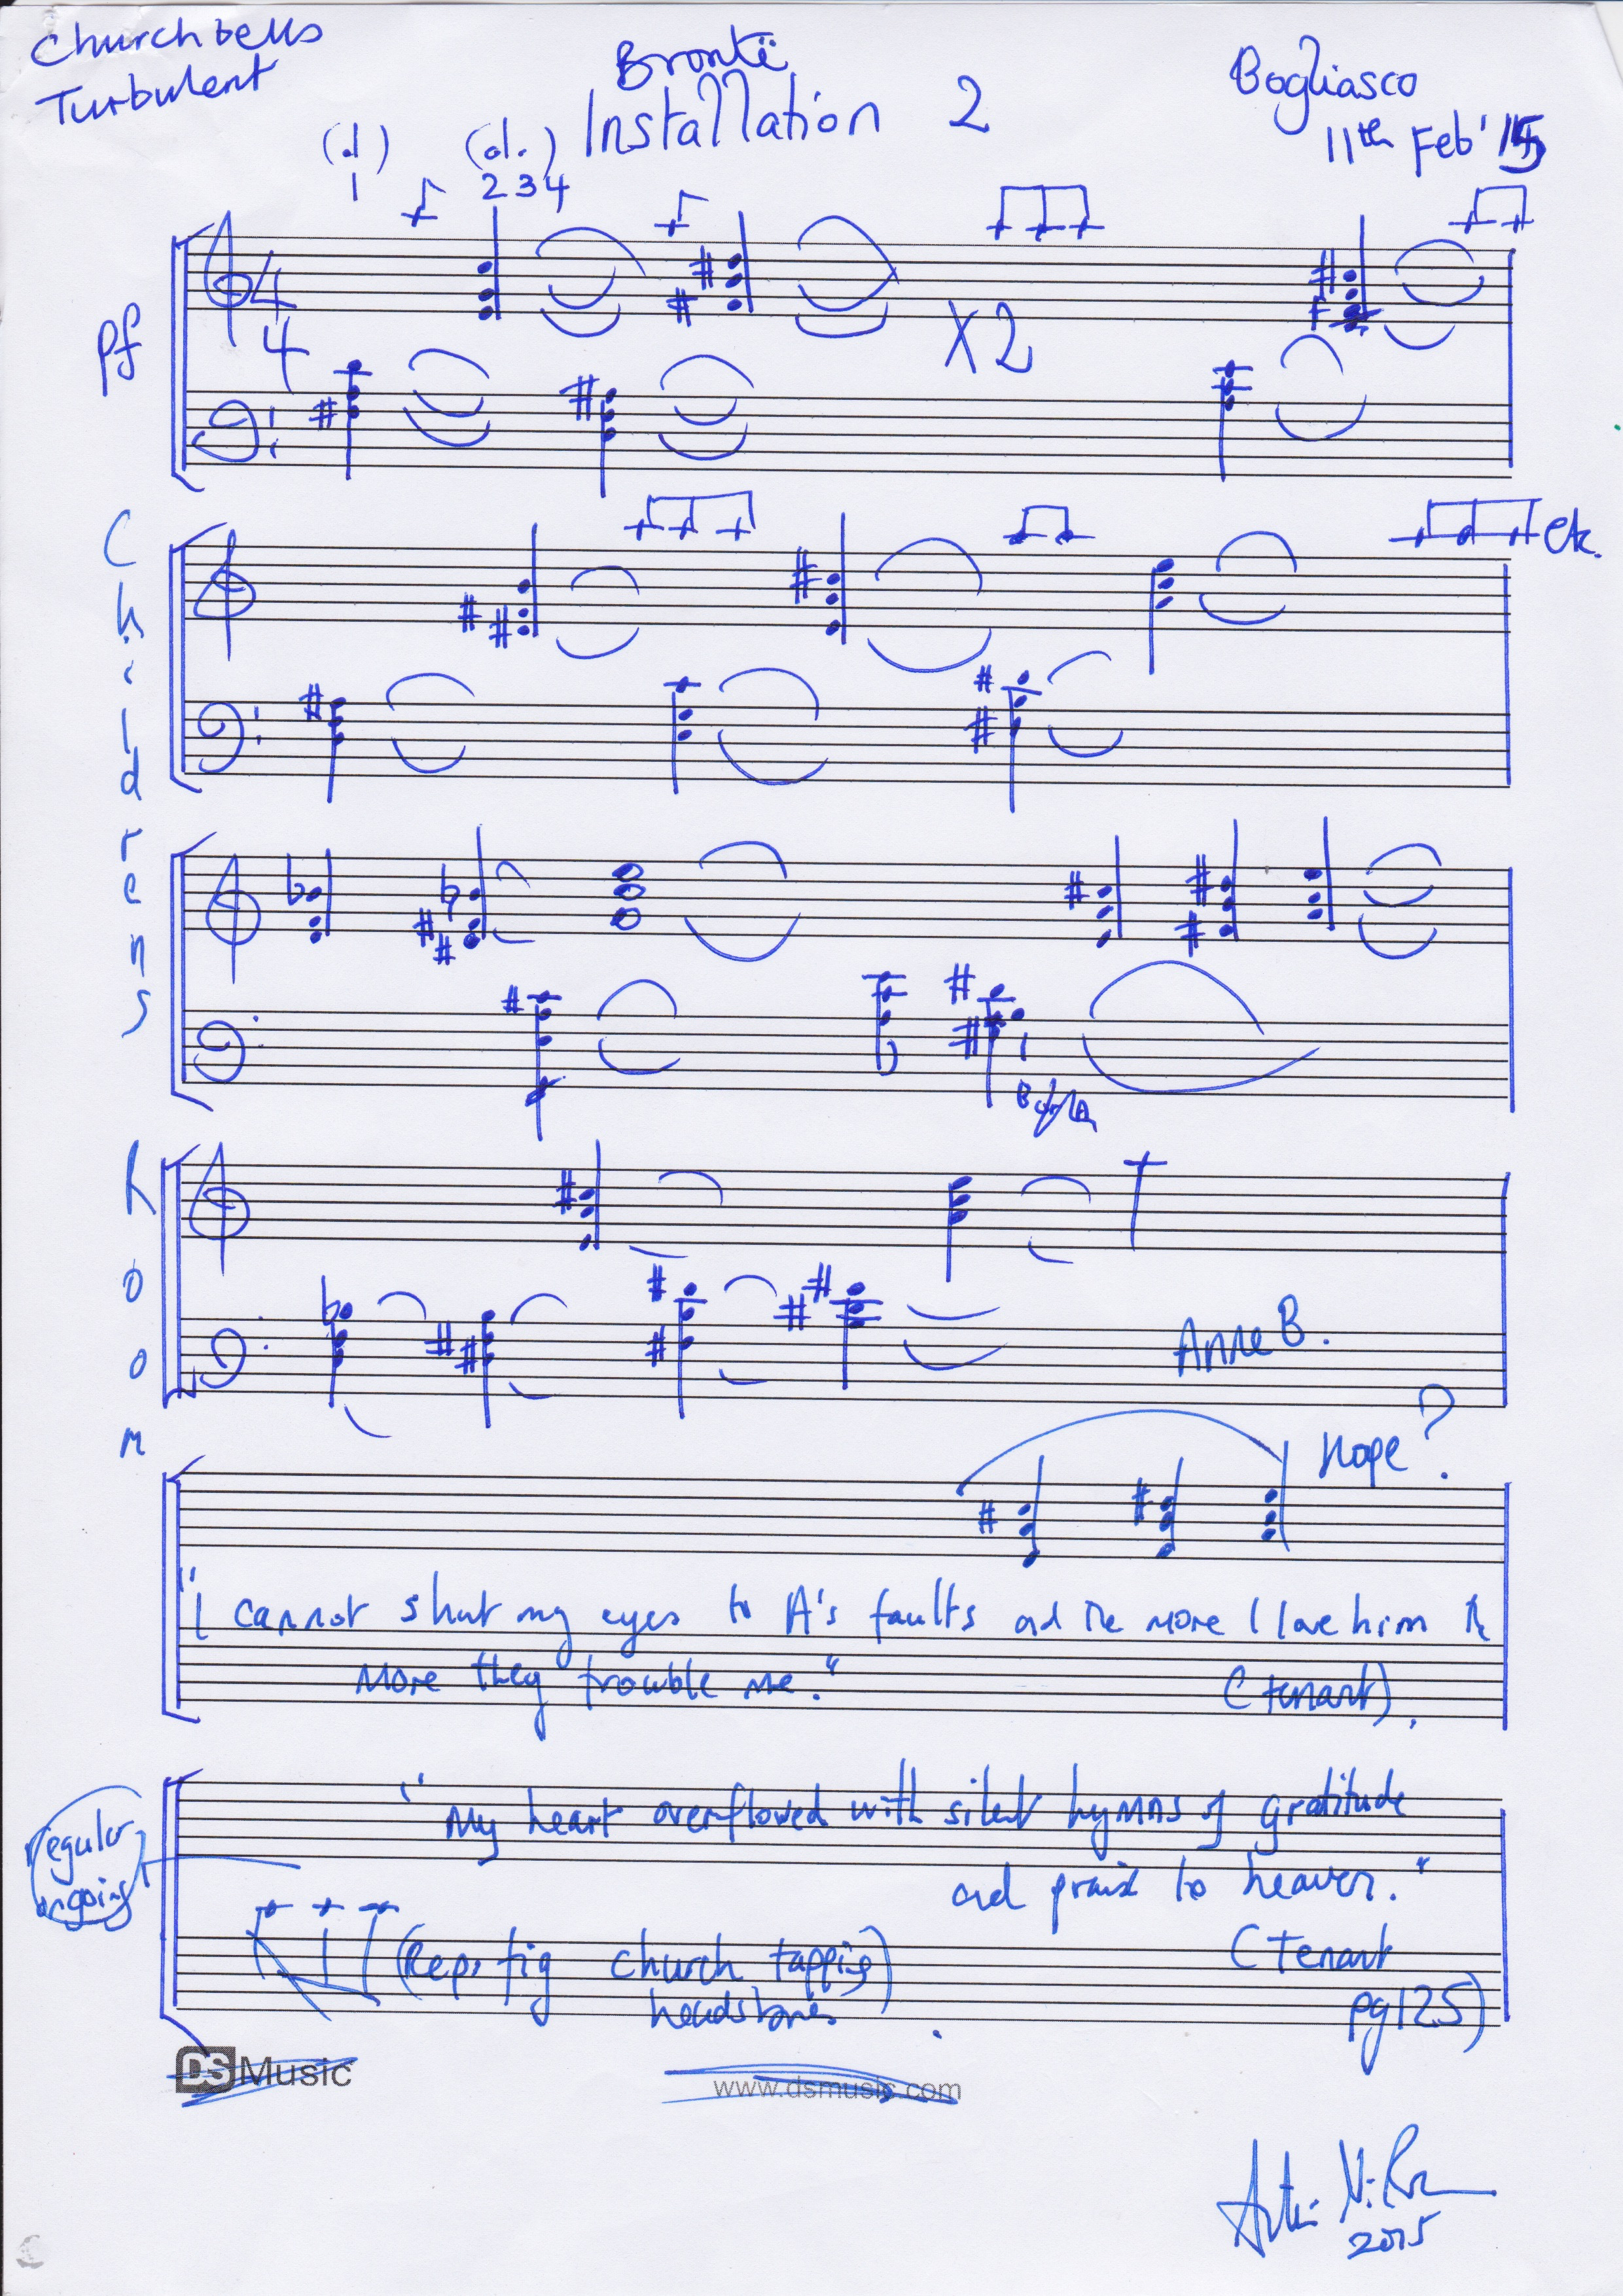 Original draft score for part of Linger